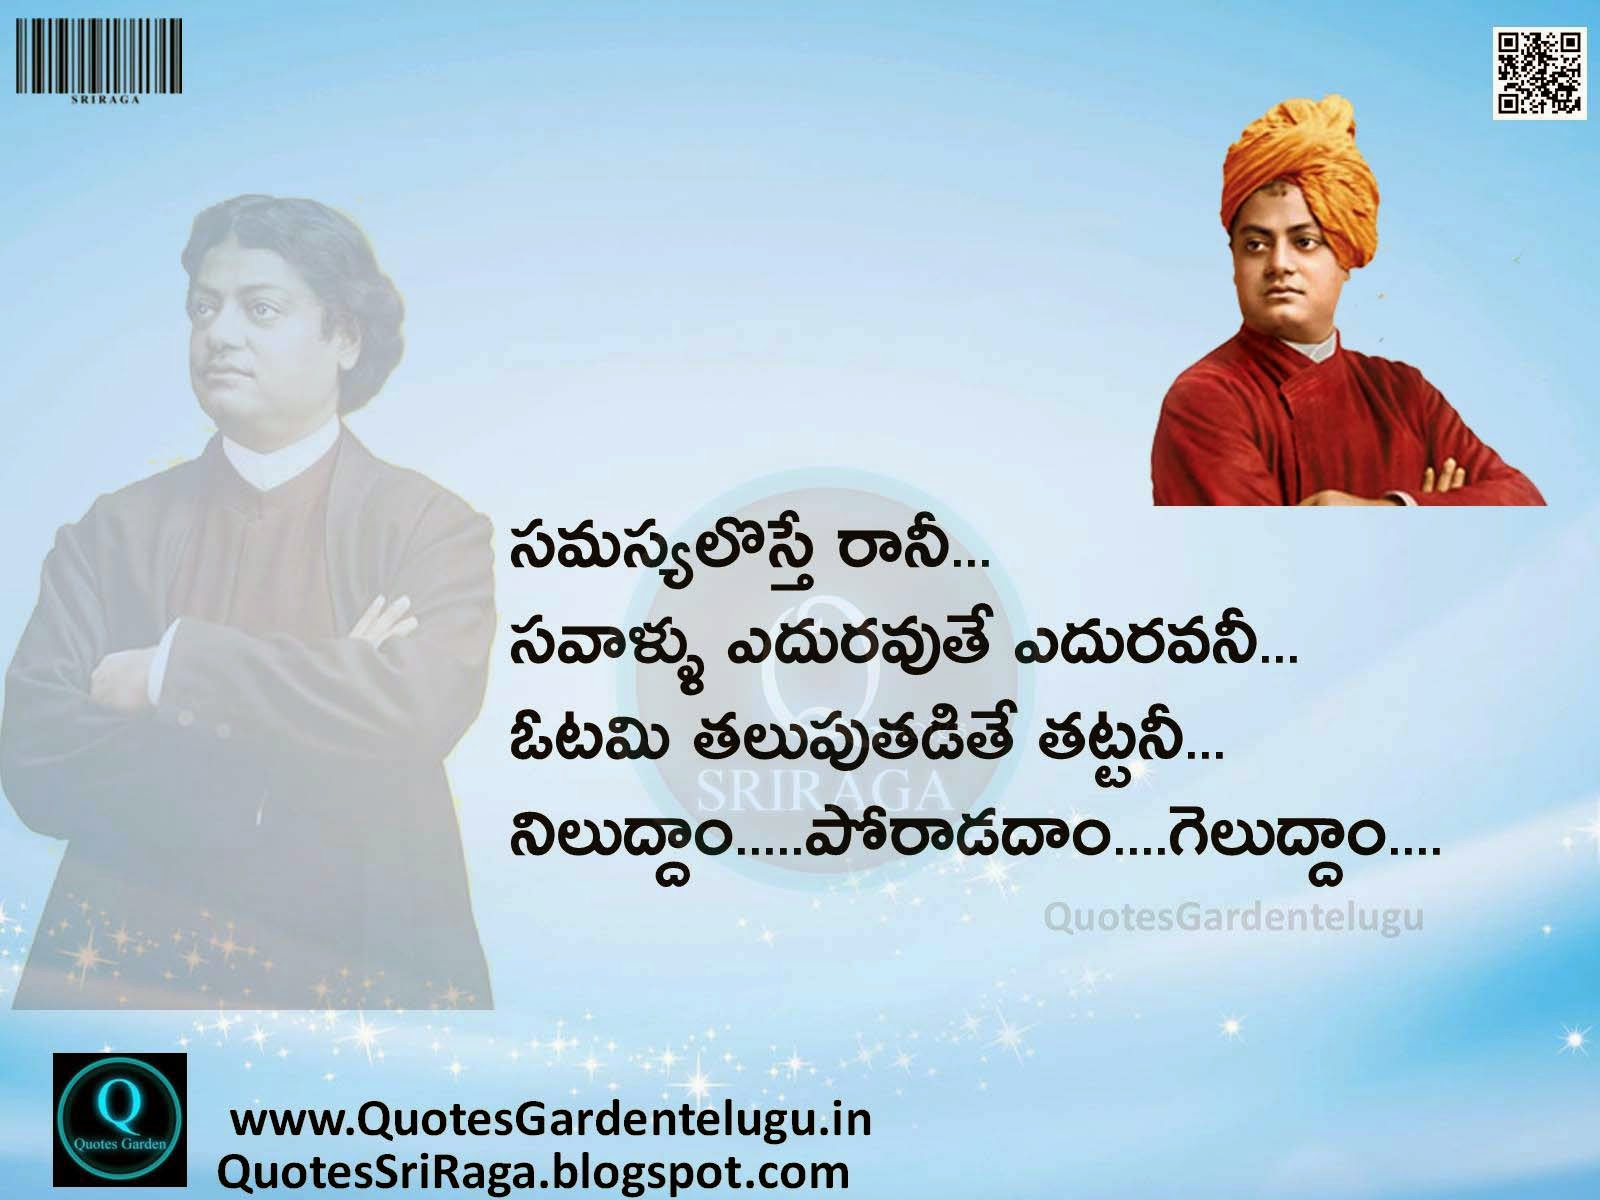 Vivekananda telugu quotes - Vivekananda Best Inpsirational quotes - Vivekananda inspirational quotes in telugu - Swamy vivekananda Quotes vivekananda Quotes with Vivekananda images best vivekananda images best vivekananda wallpapers images